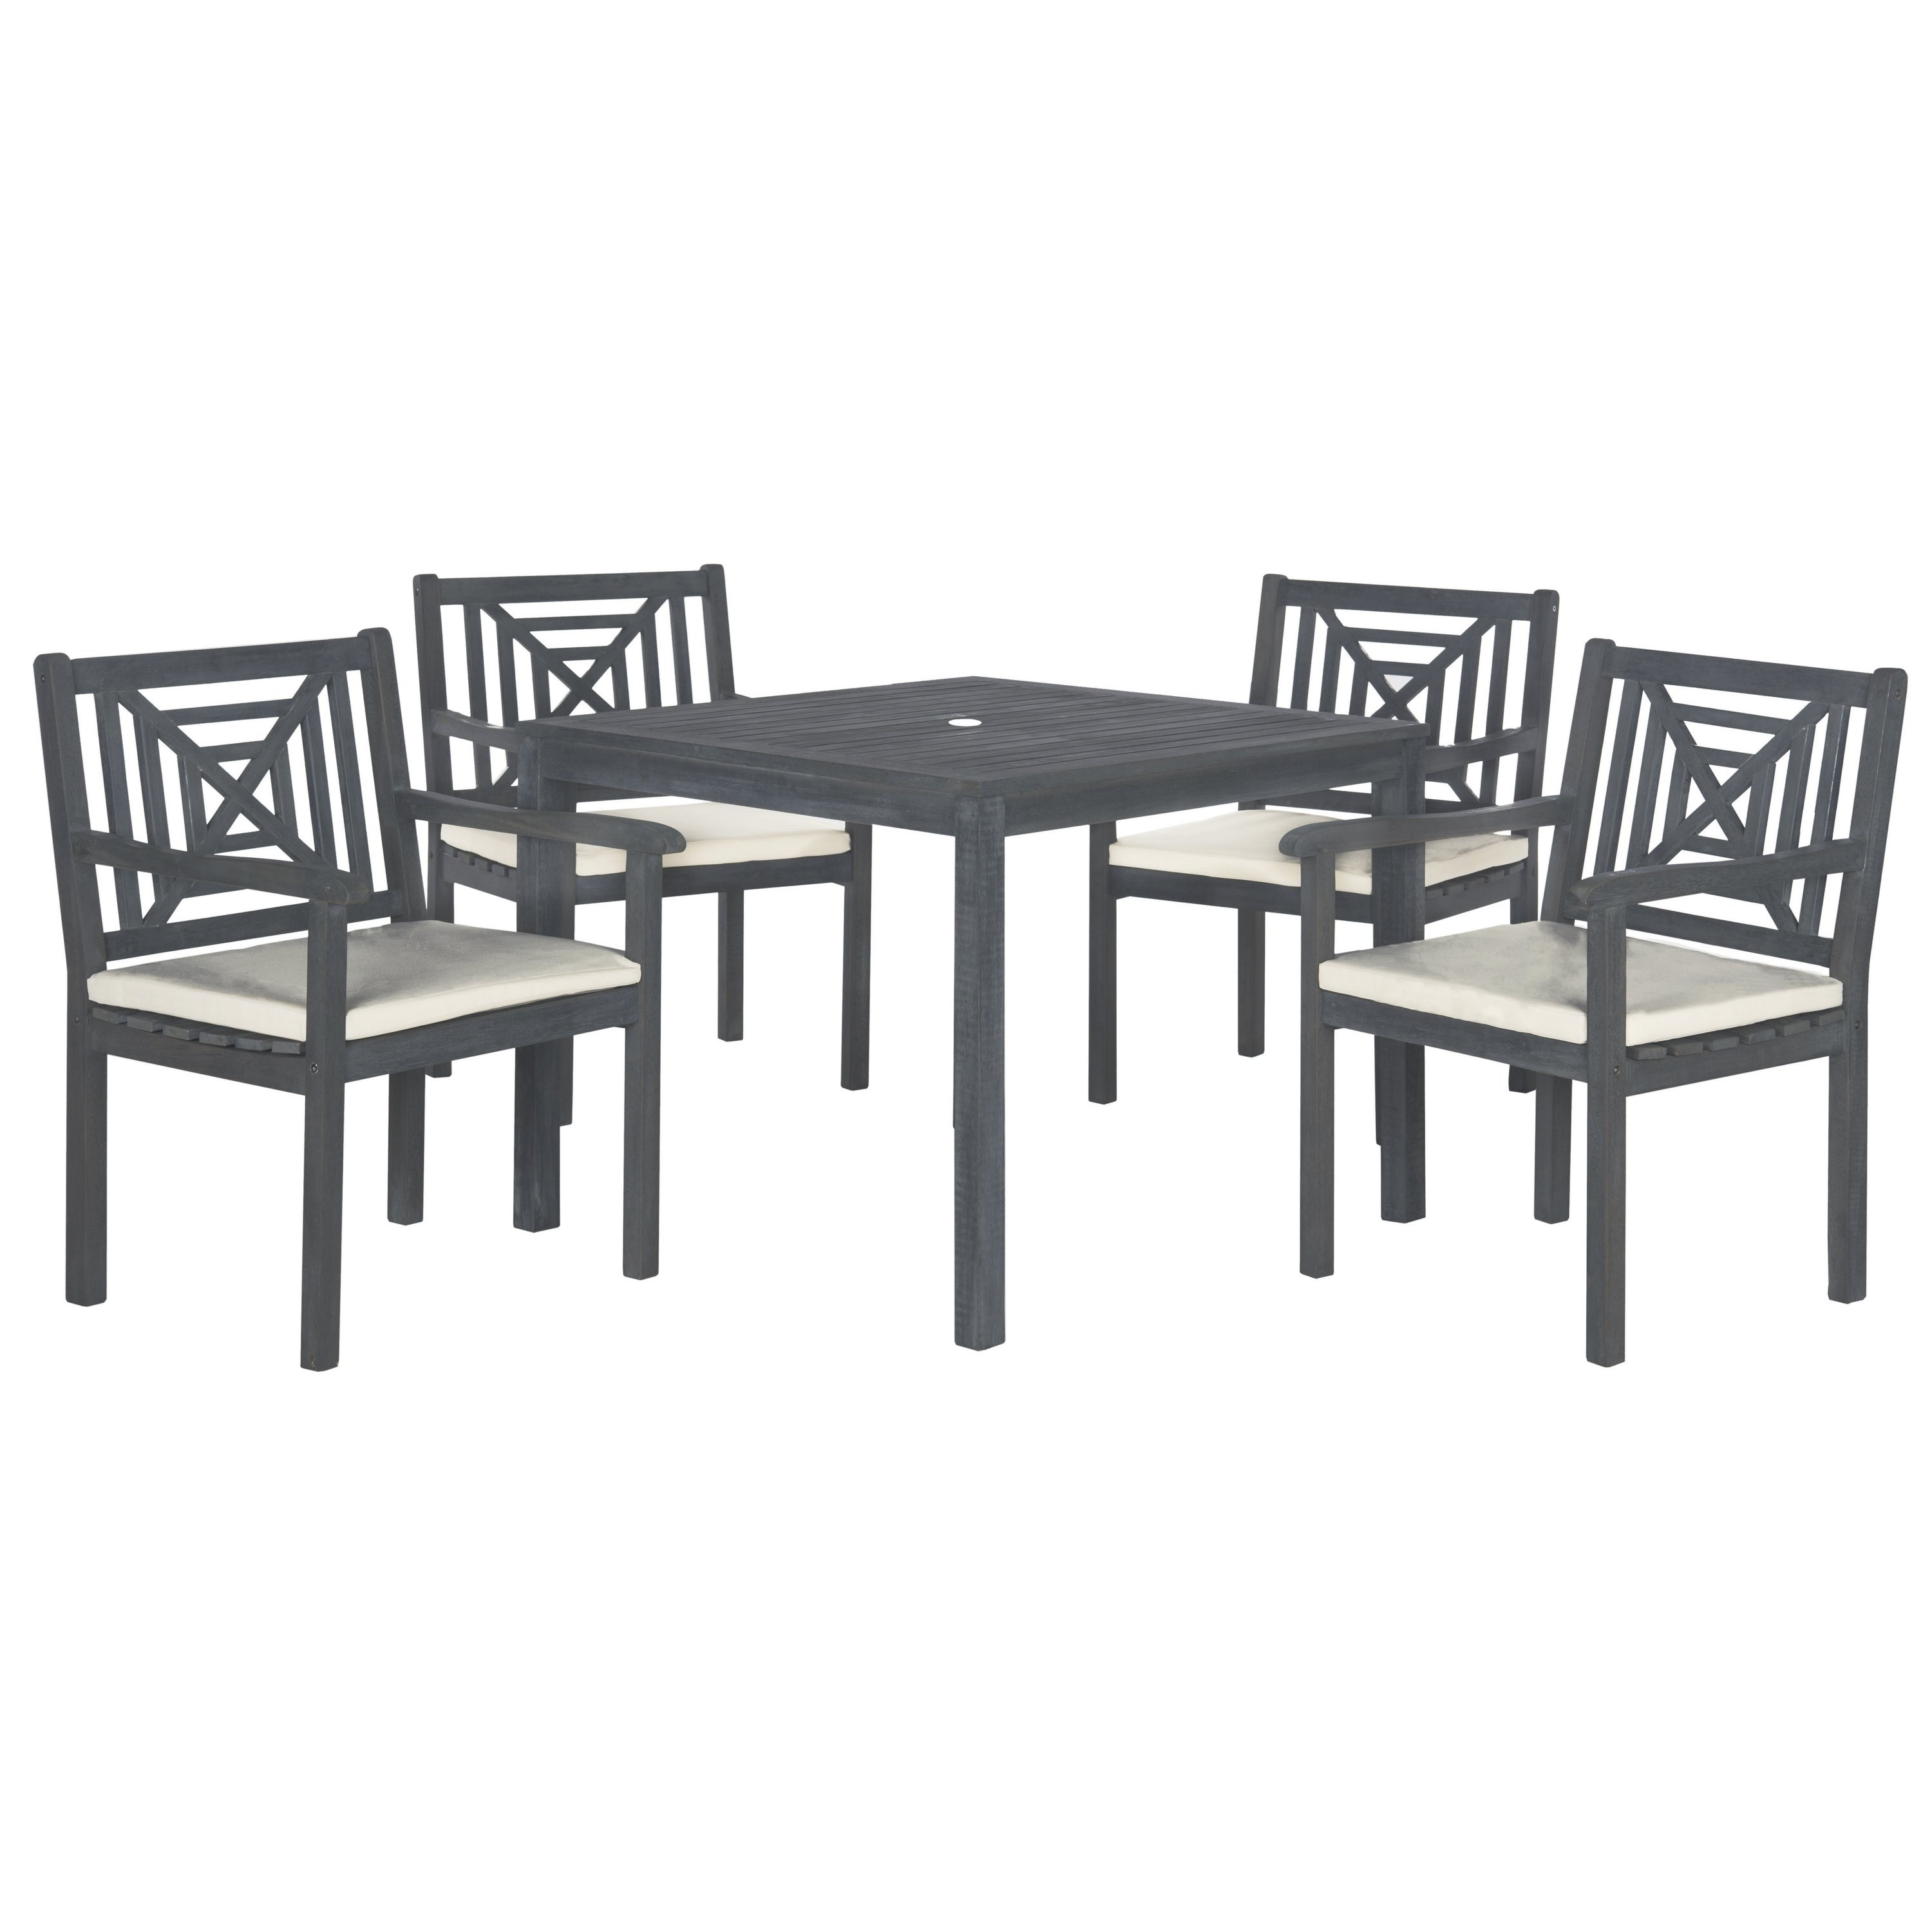 Safavieh Outdoor Living Del Mar Ash Grey Acacia Wood 5 Piece Beige Inside Best And Newest Delmar 5 Piece Dining Sets (View 22 of 25)